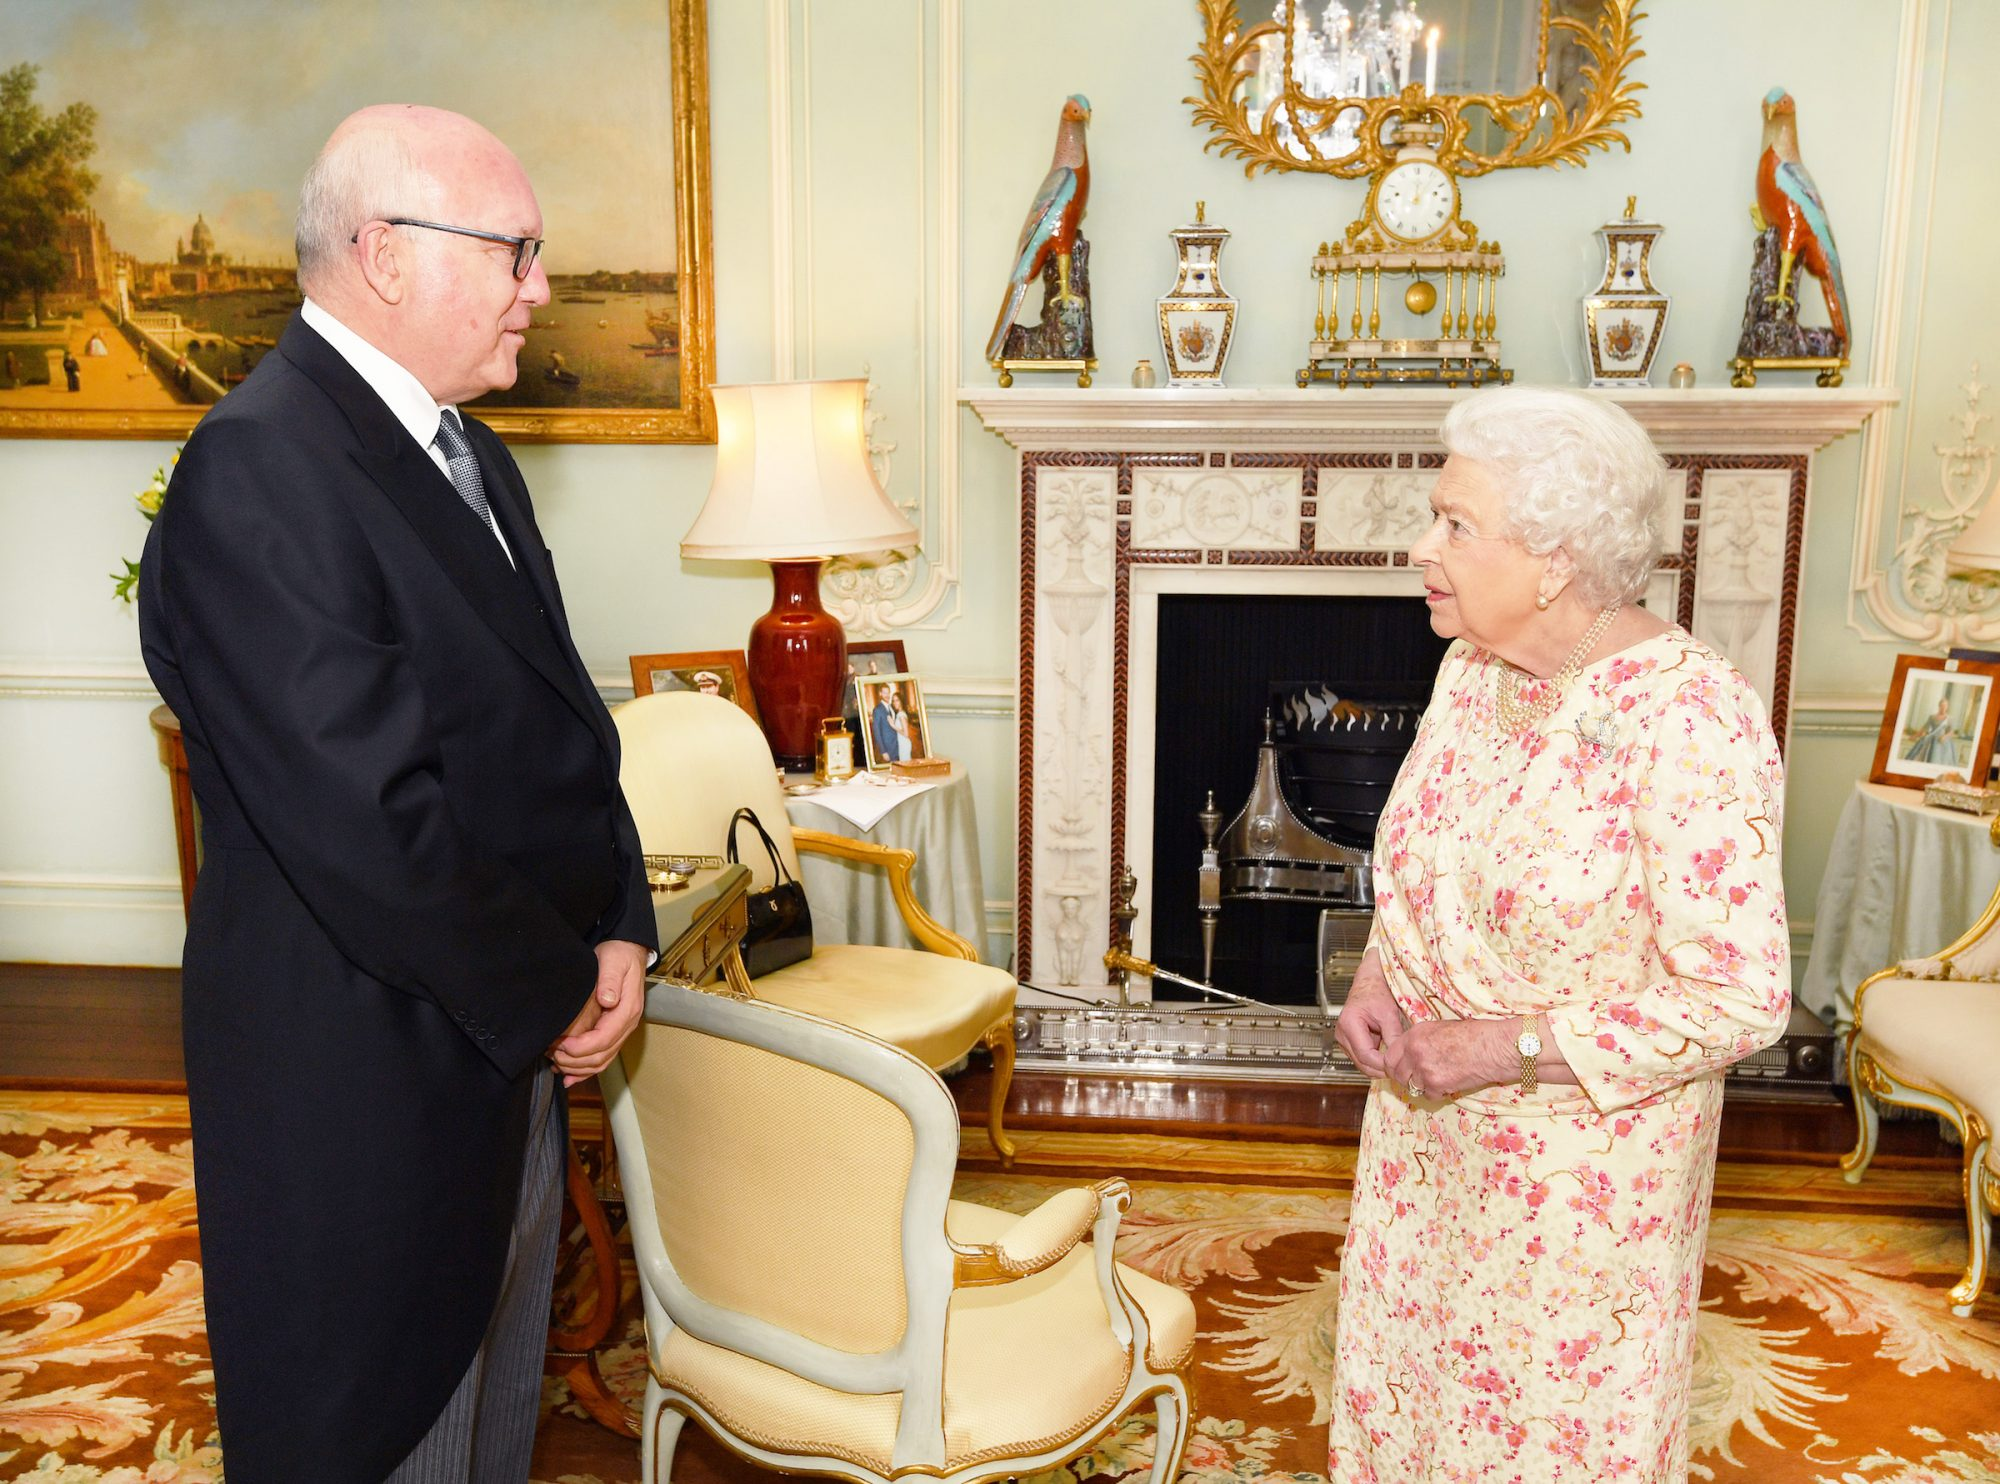 queen elizabeth ii with photo of prince harry and meghan markle in background